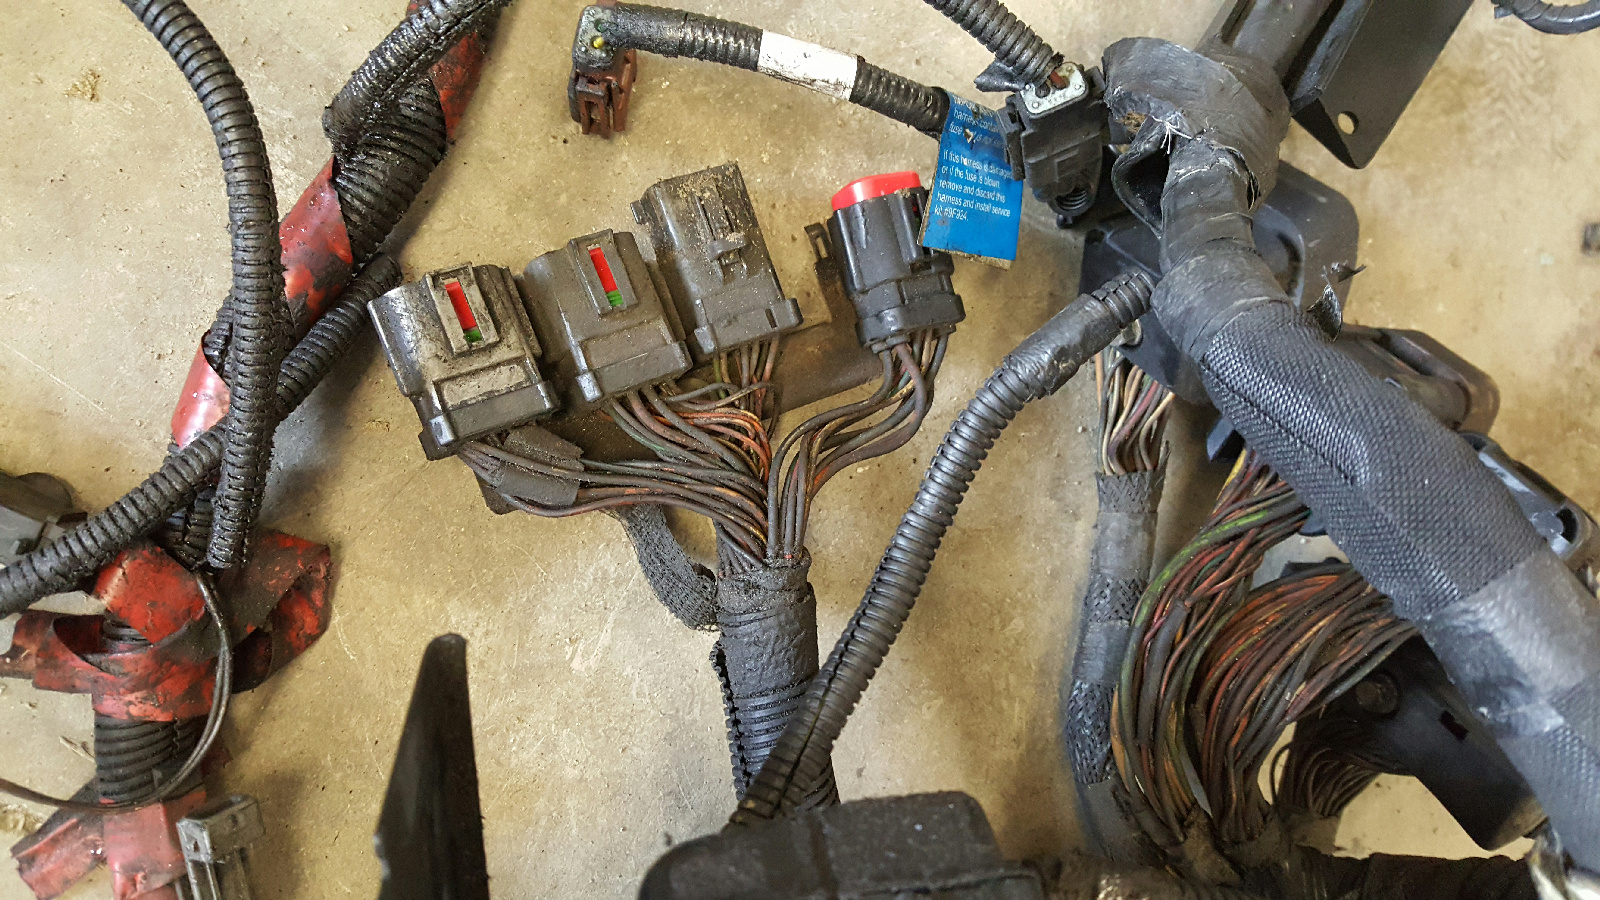 30338953  Ford Engine Wiring Harness on ford 7.3 battery harness, ford 7.3 engine cover, ford 7.3 engine fuel pressure regulator, 7.3 powerstroke engine wiring harness, ford 7.3 injector harness,